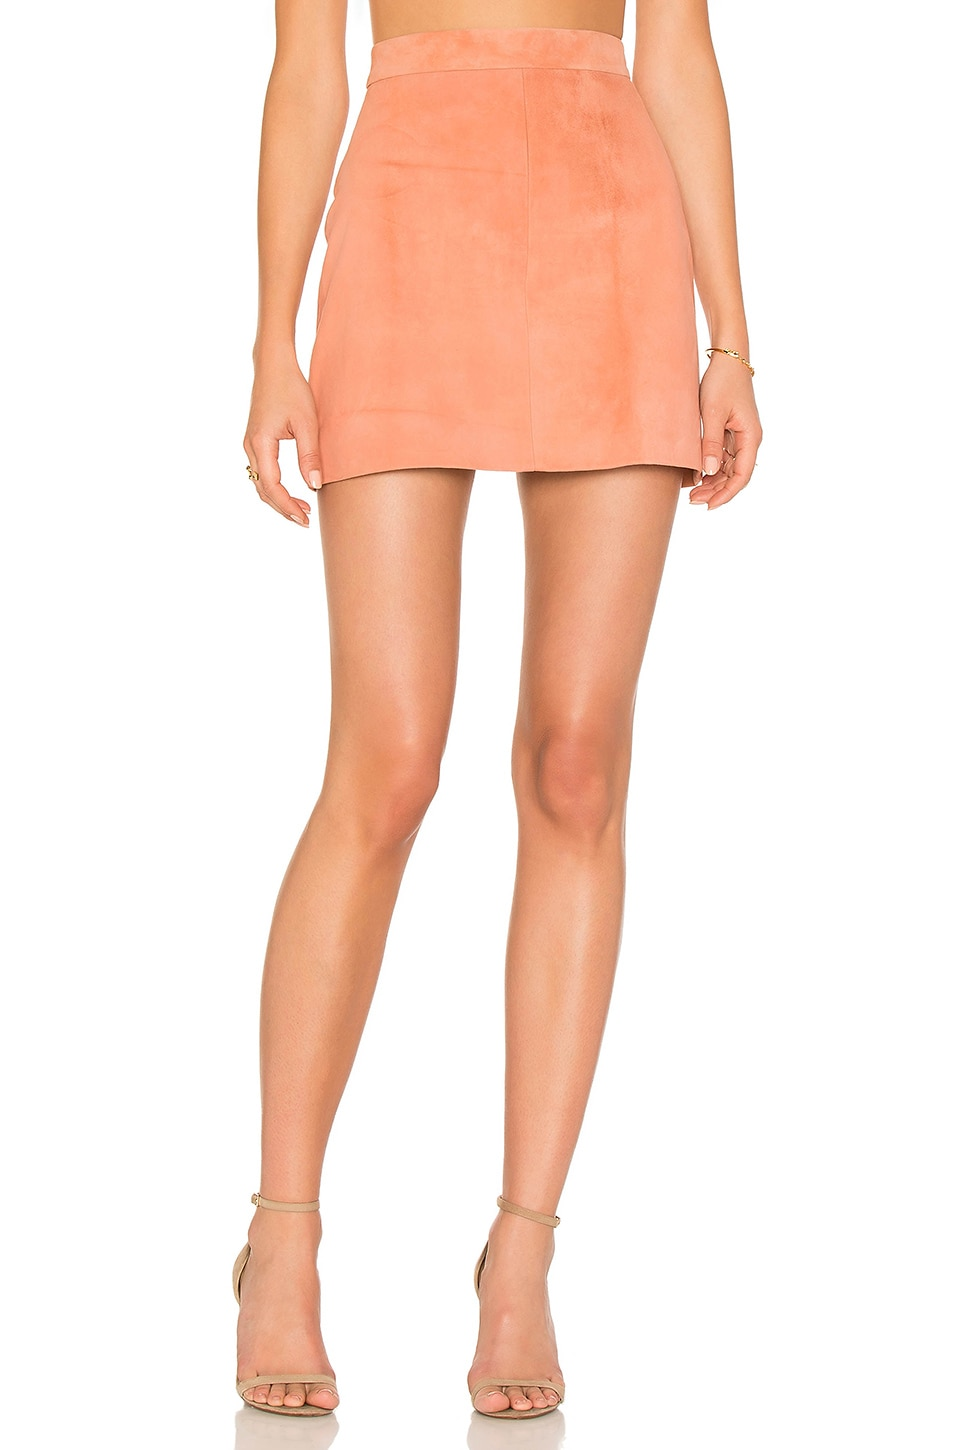 AYNI Platina Suede Mini Skirt in Blush